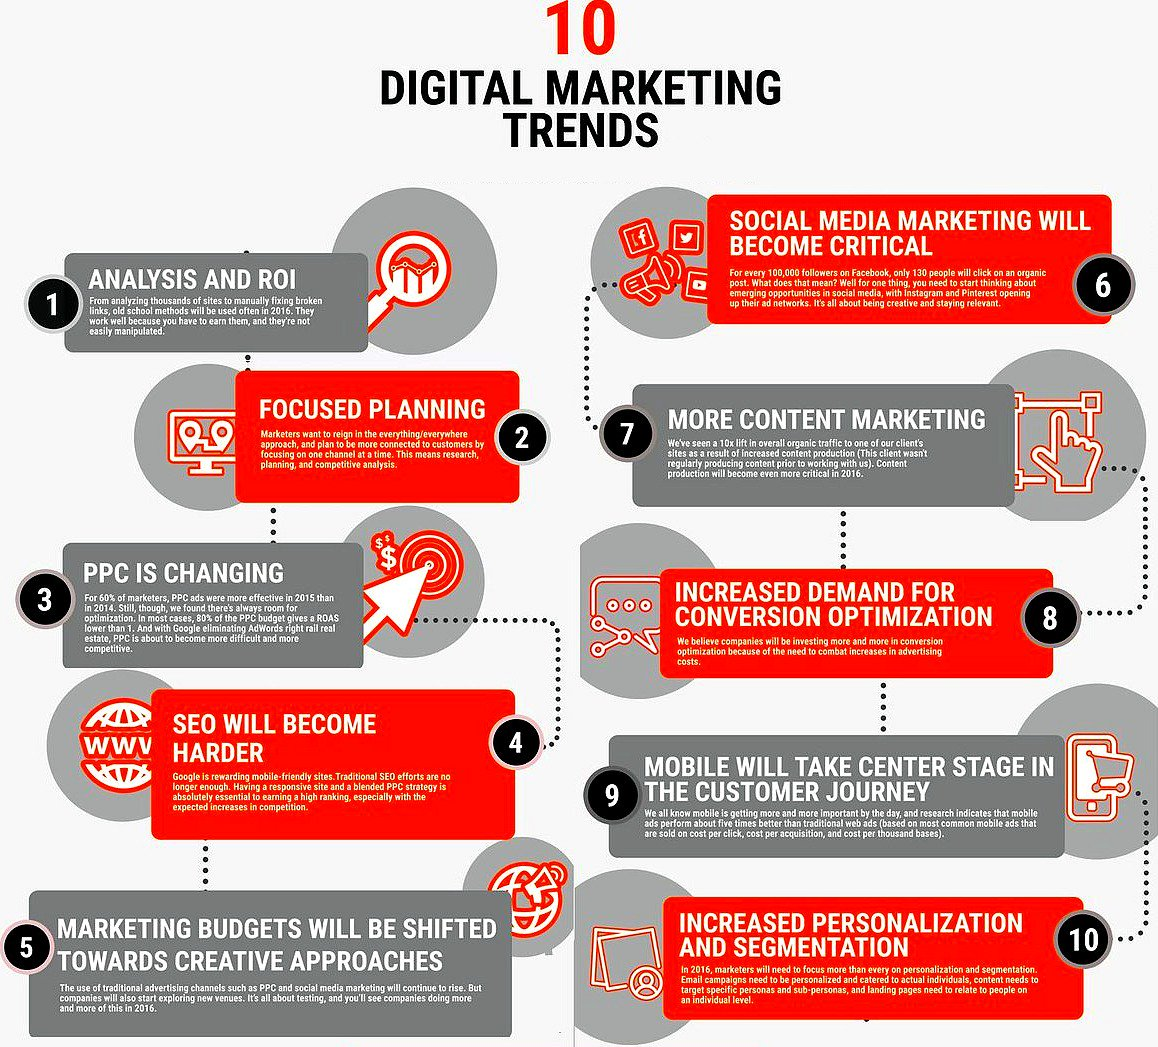 10 Major Digital #Marketing Trends to Pay Attention for 2017 [Infographic]  #DigitalMarketing #Analytics #SocialMedia #SMM #CRO #SEO #Mobile https://t.co/XPqpz9JhC5